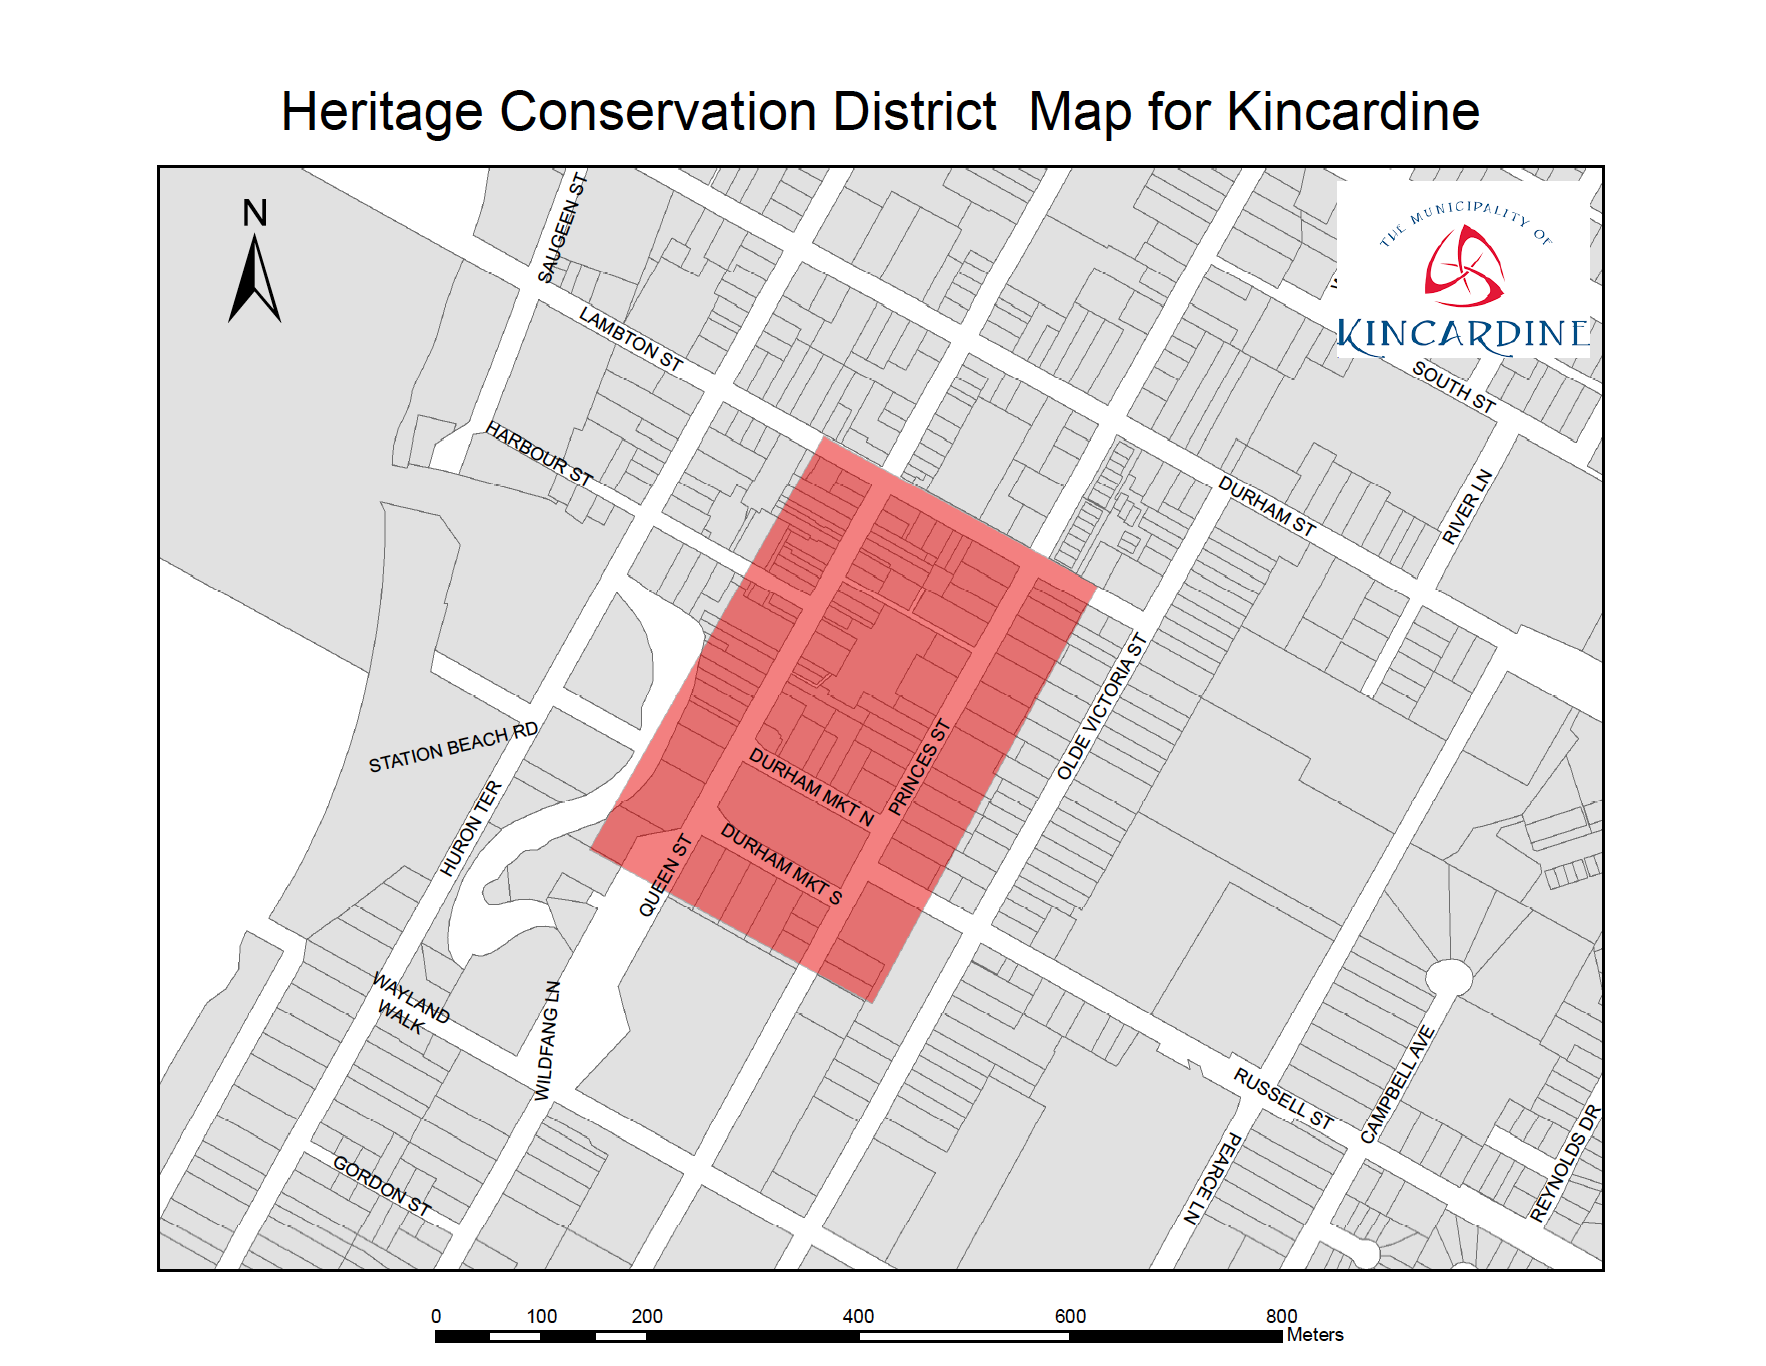 Heritage Conservation map